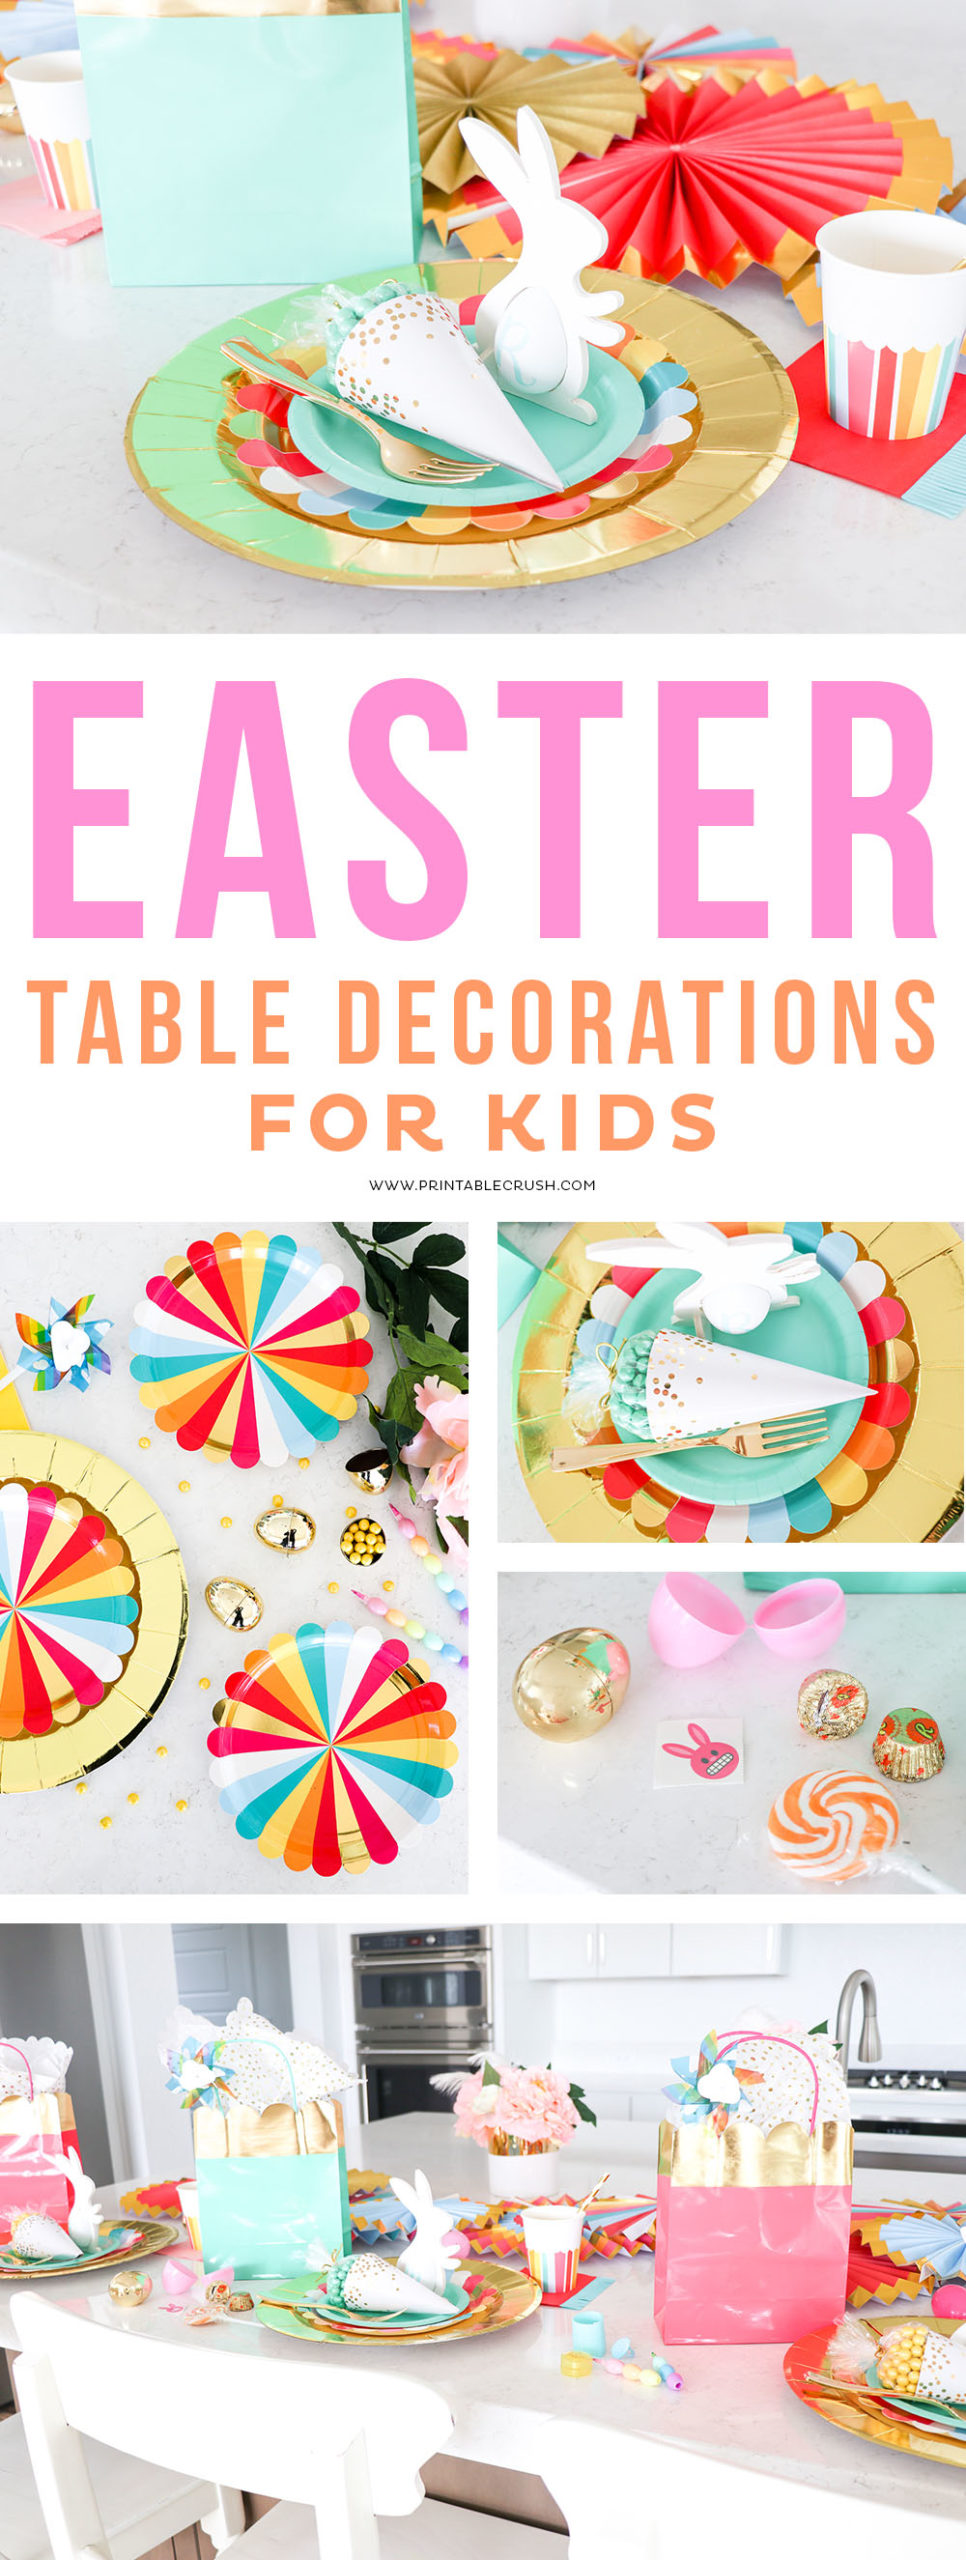 Easy Easter Table Decorations for Kids #easter #easterdecorations #easterforkids #easterparty #easterpartydecorations #orientaltrading via @printablecrush